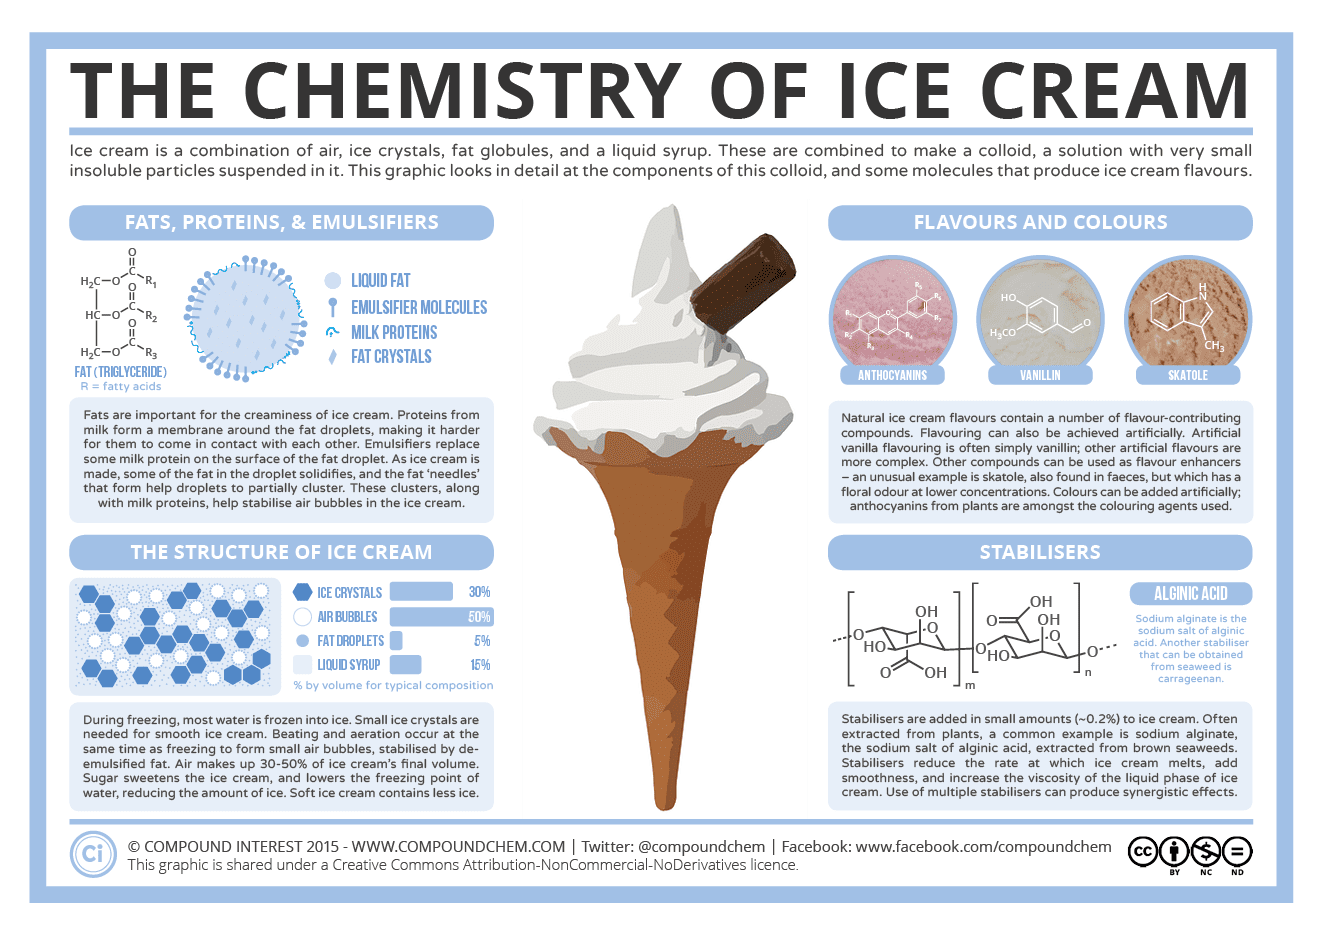 From http://www.compoundchem.com/2015/07/14/ice-cream/